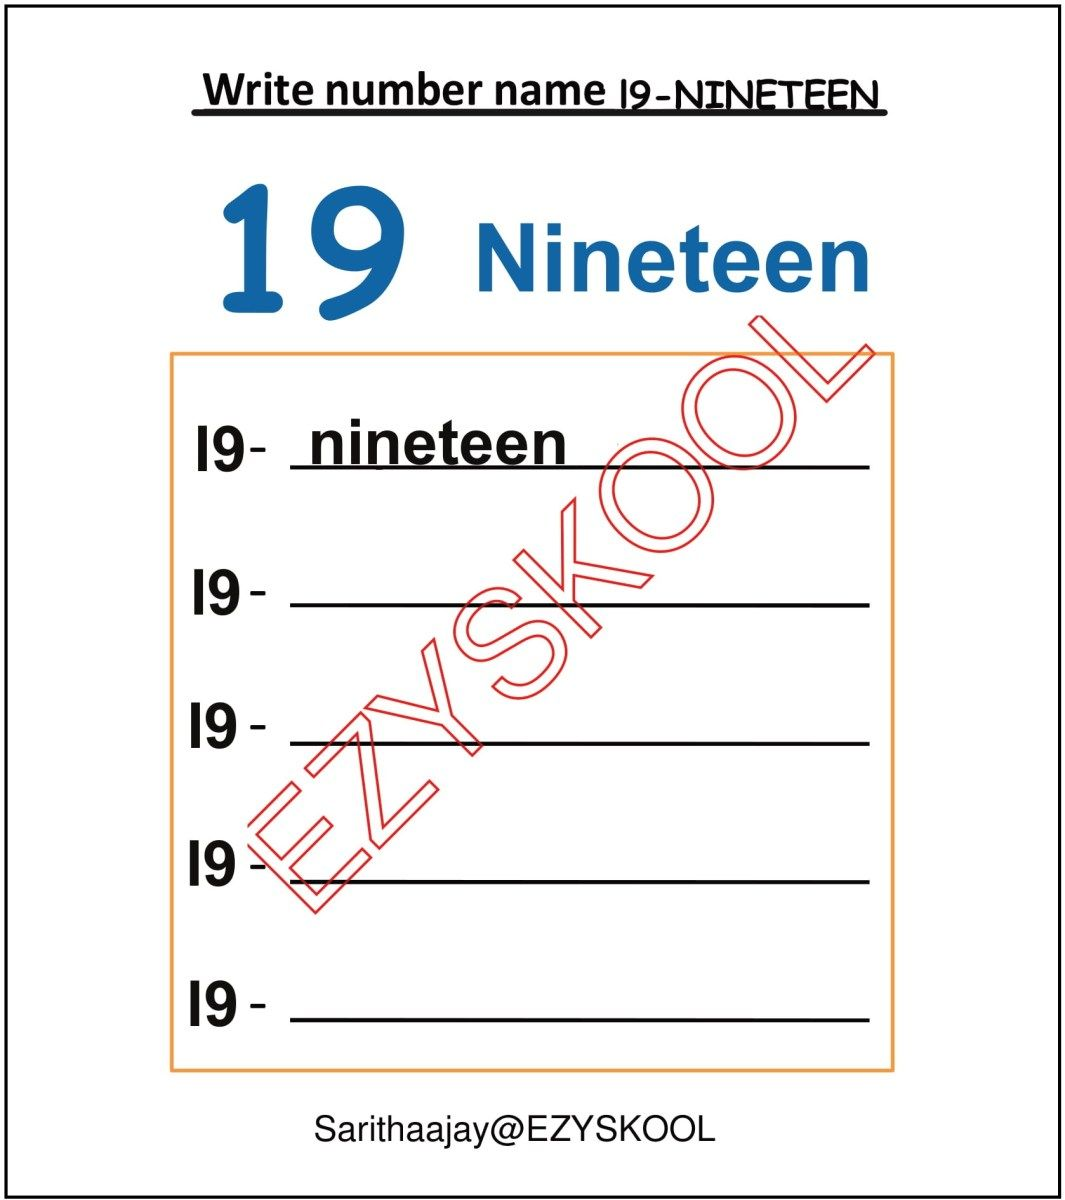 Number Name 19 Nineteen In